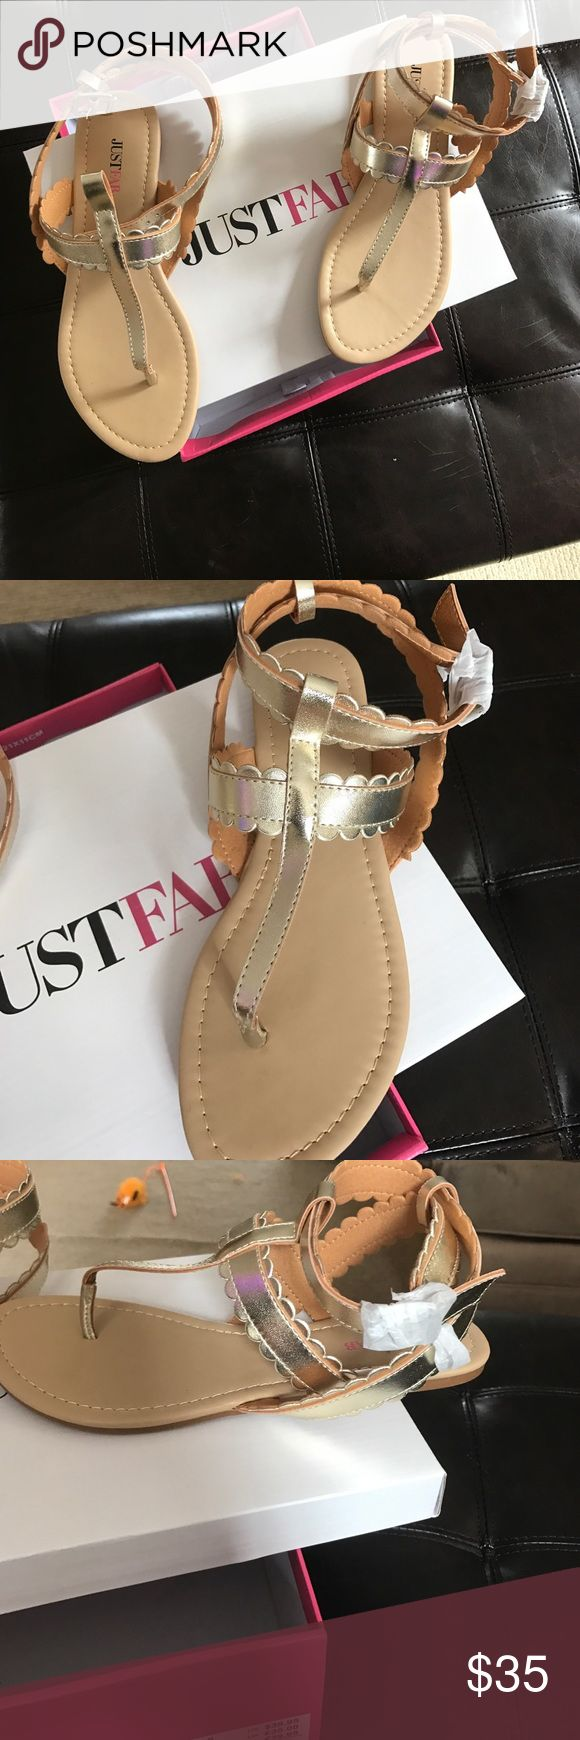 """Gold Flat sandal flat sole, thong toe, and textured strap construction. """"Esmeralda"""" JustFab Shoes Sandals"""